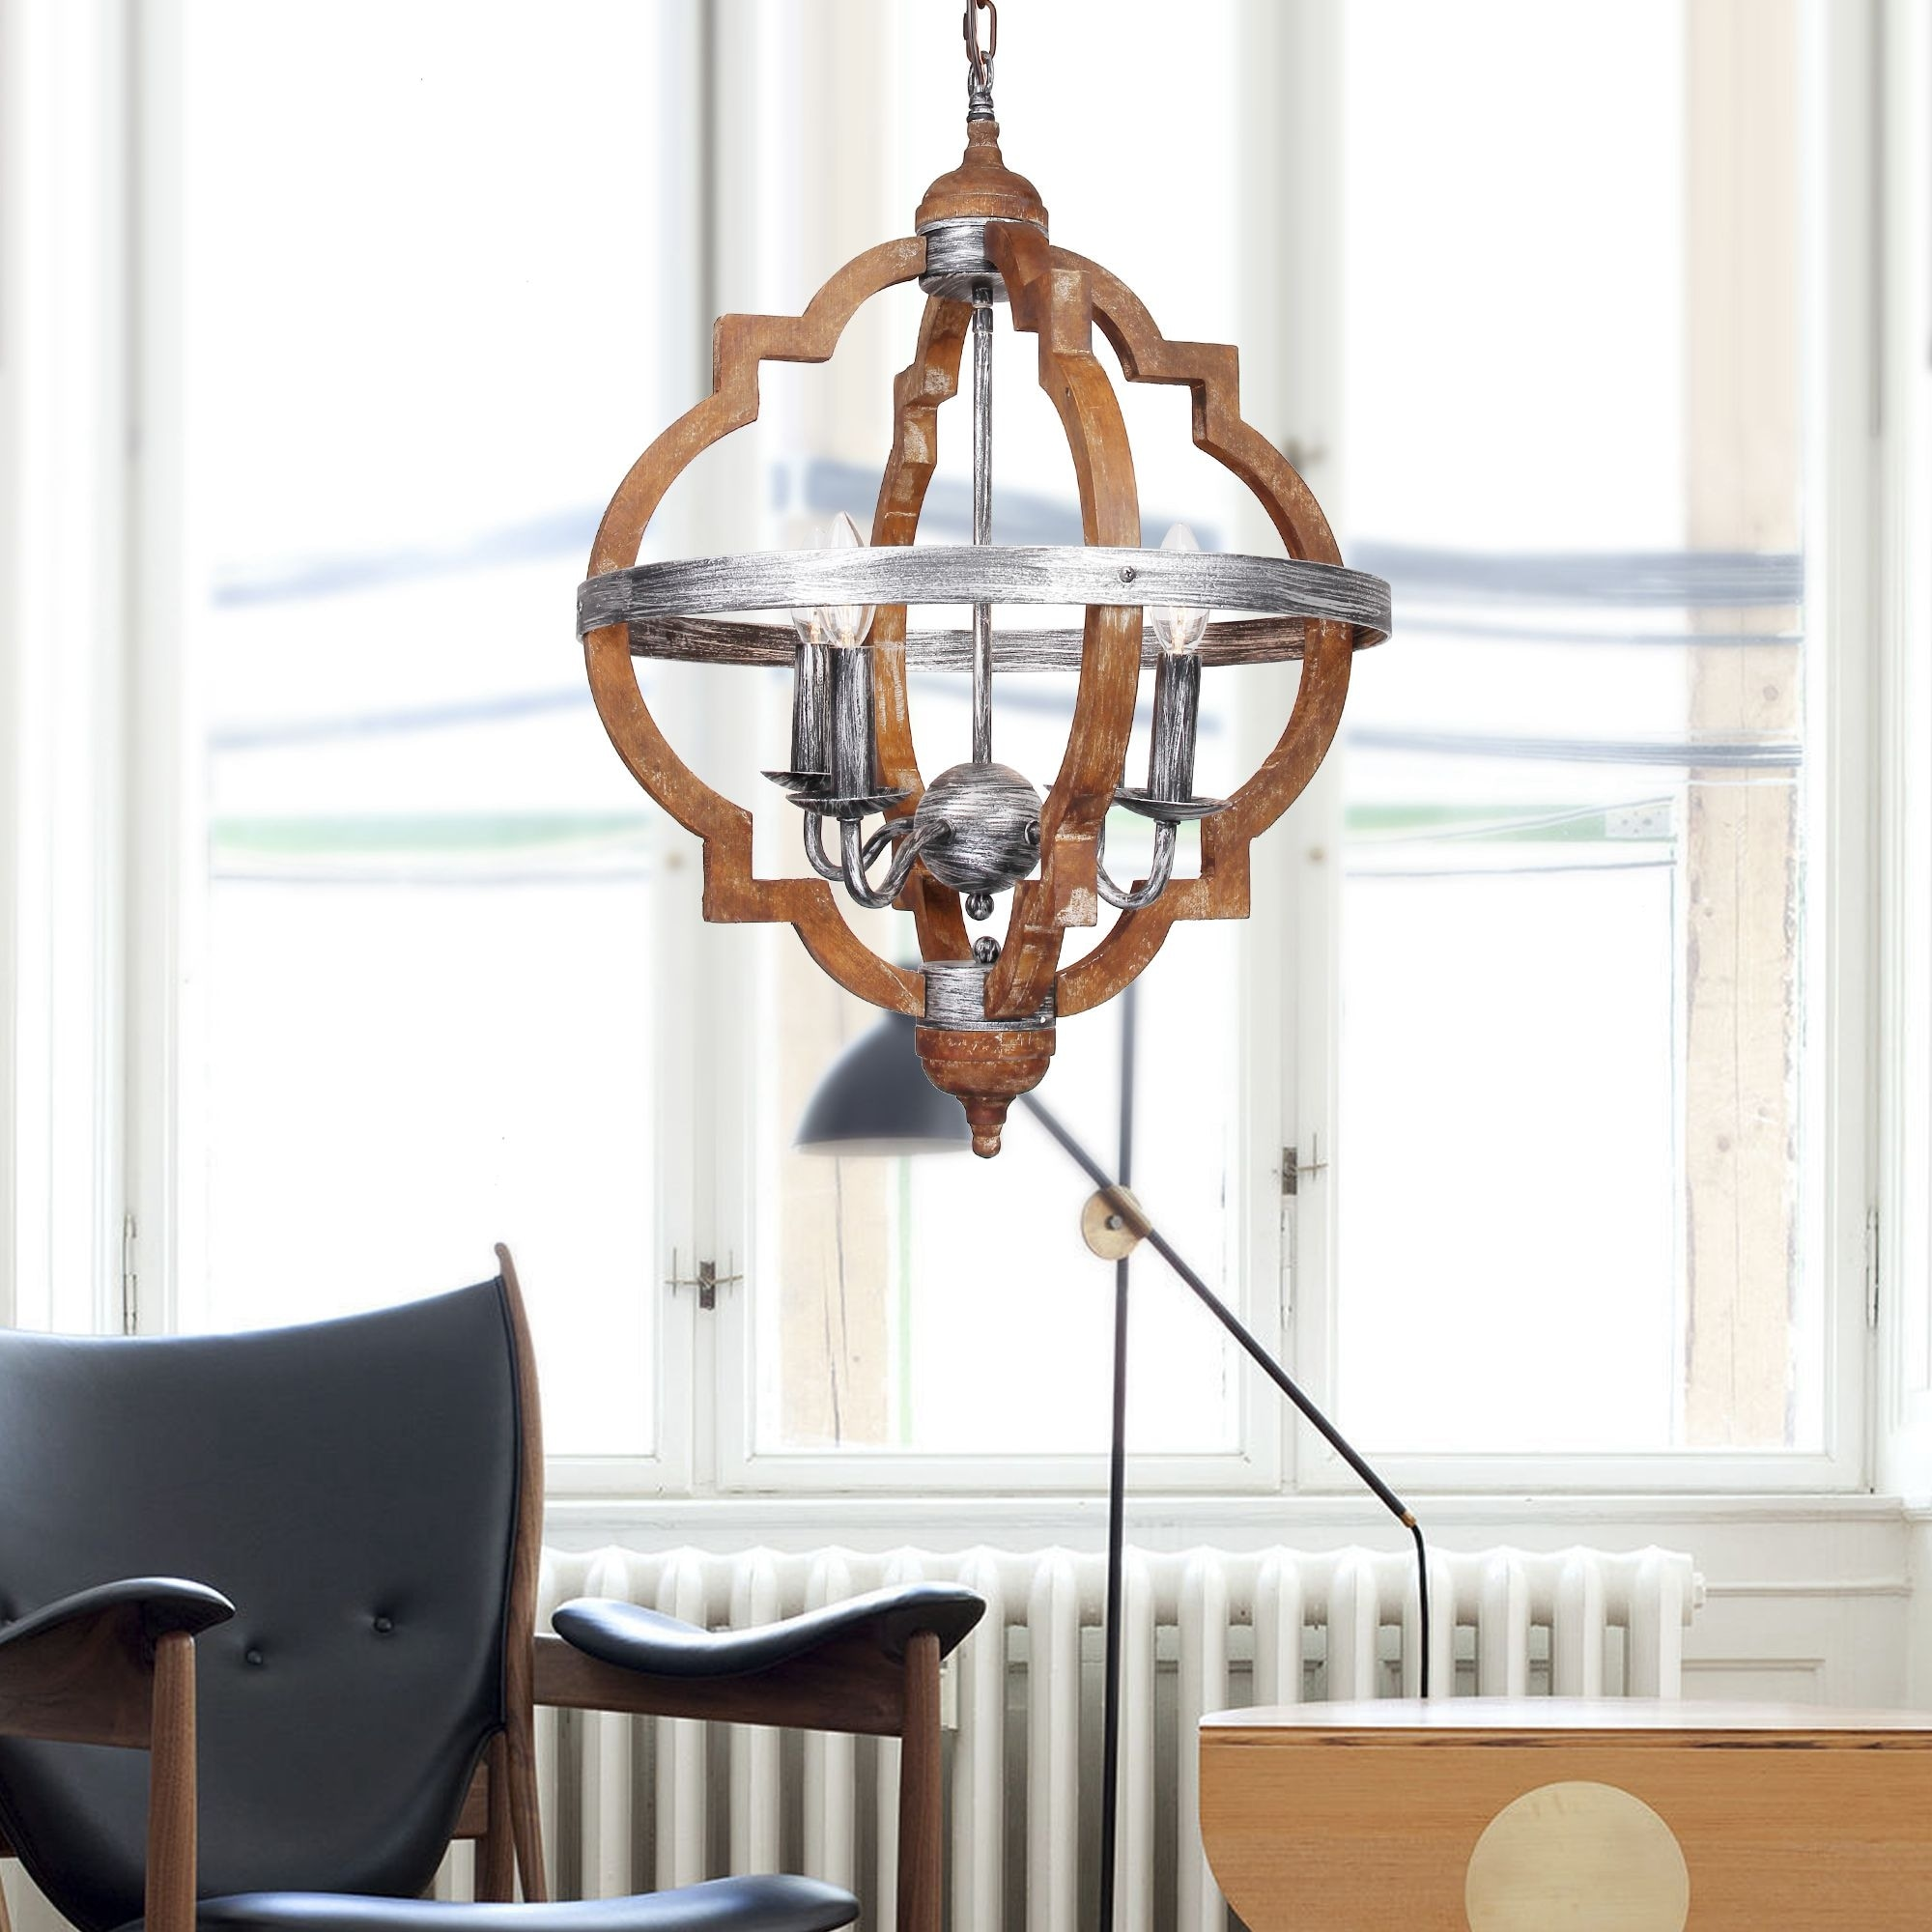 Shop rustic 4 light distressed wood chandelier free shipping today overstock com 20671529